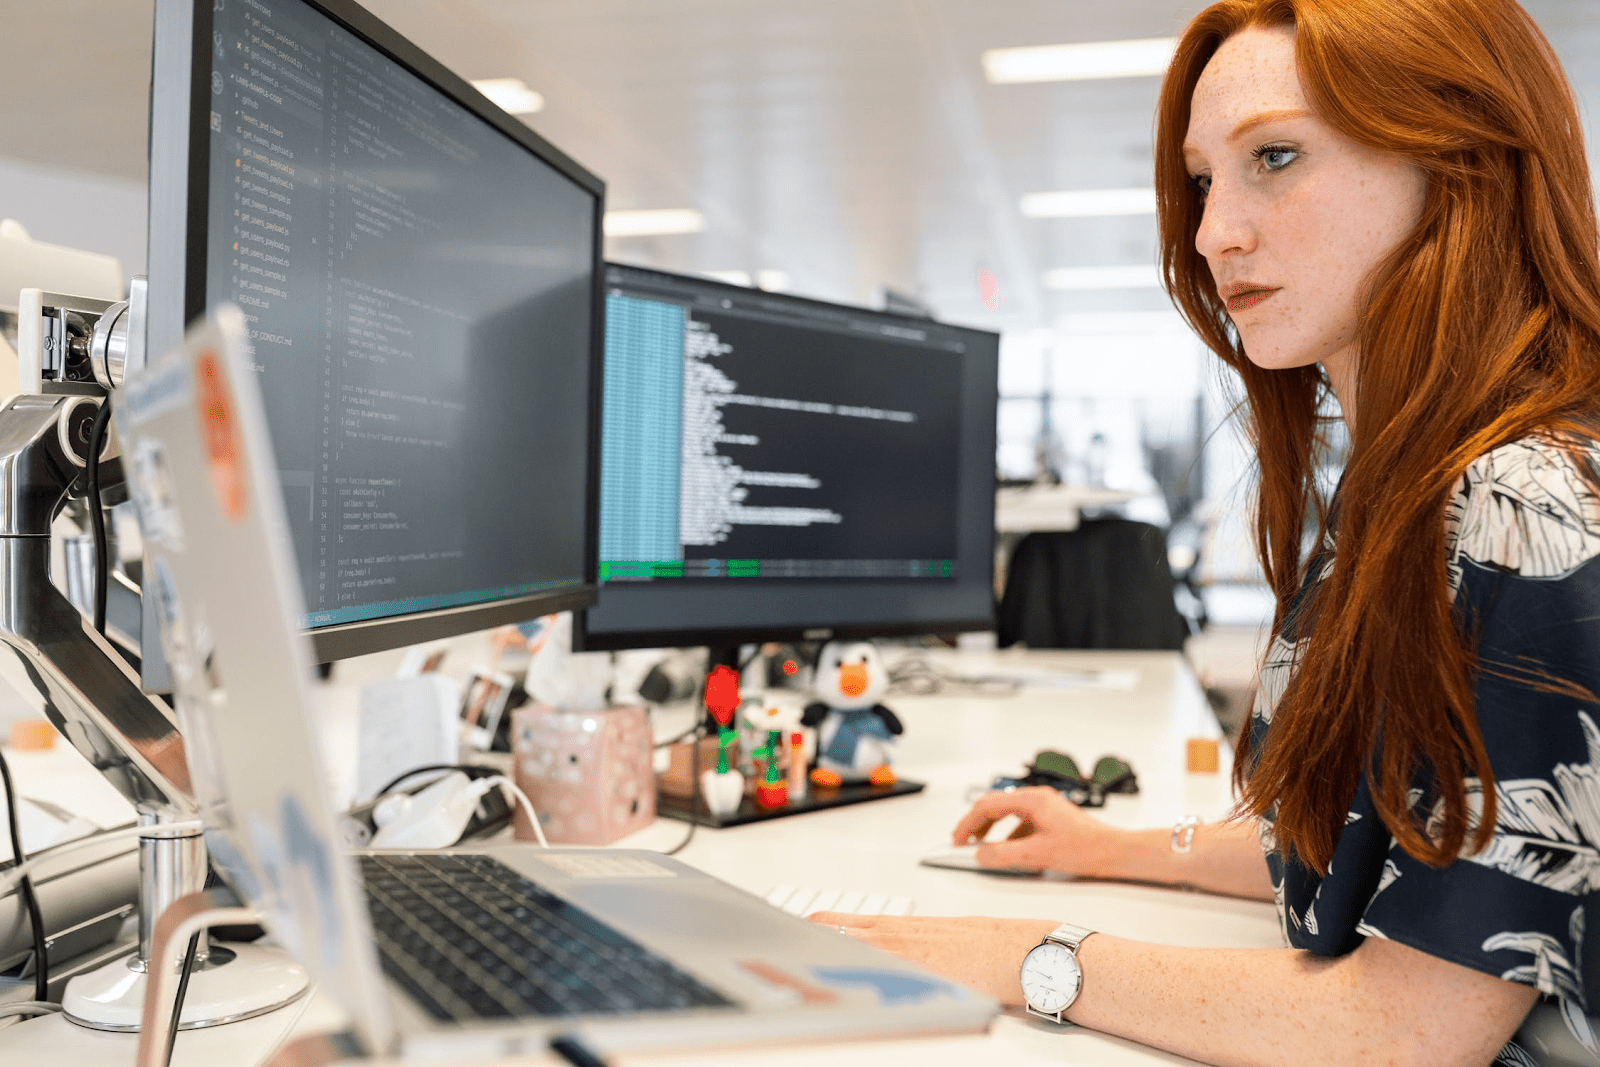 woman in front of two computer monitors creating code of conduct